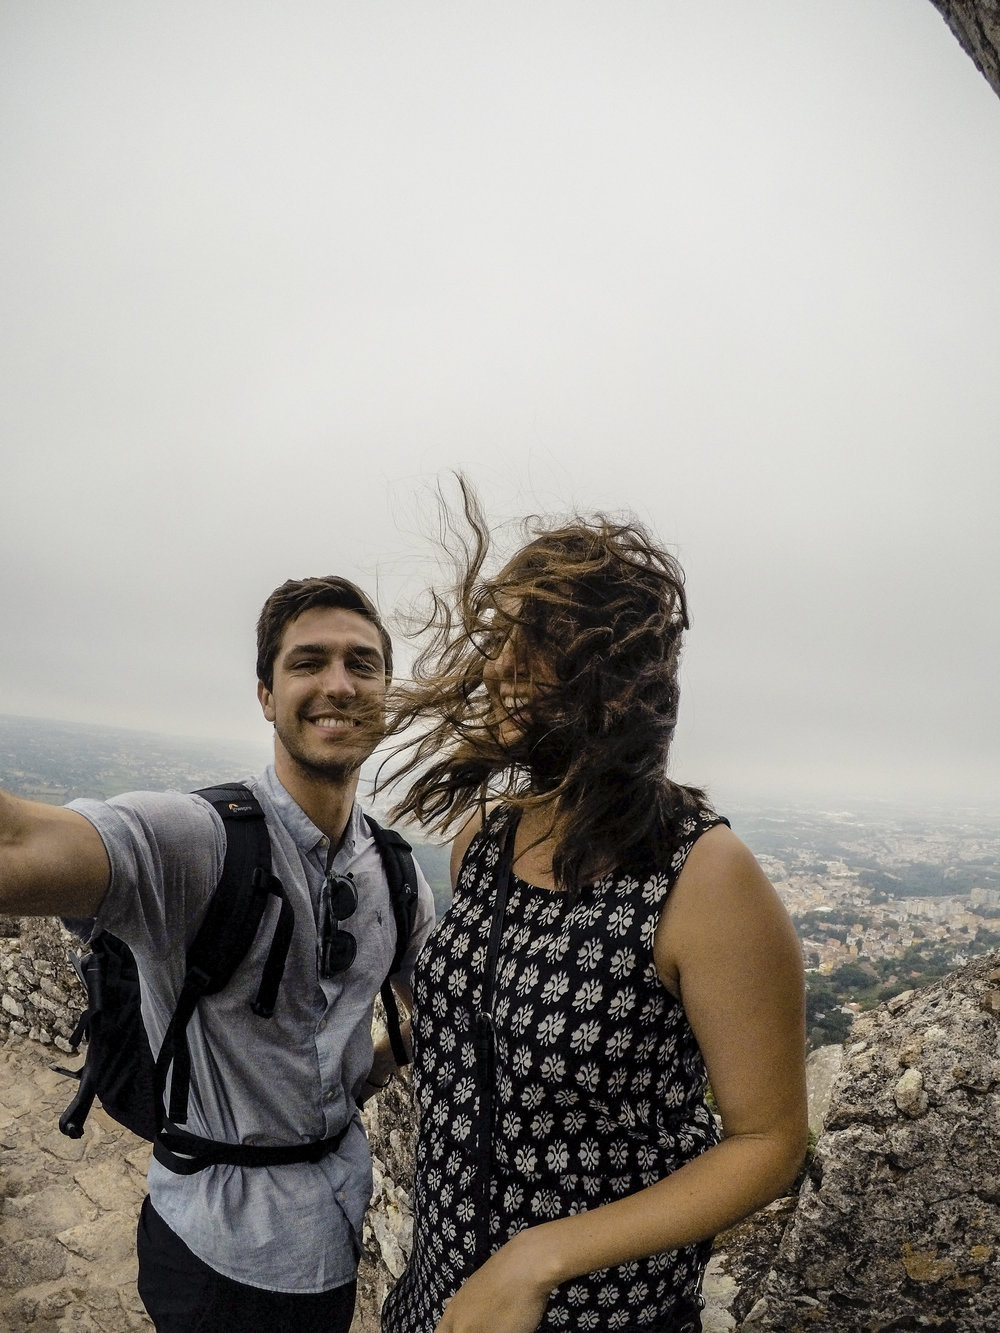 It was really windy at the Moorish Castle